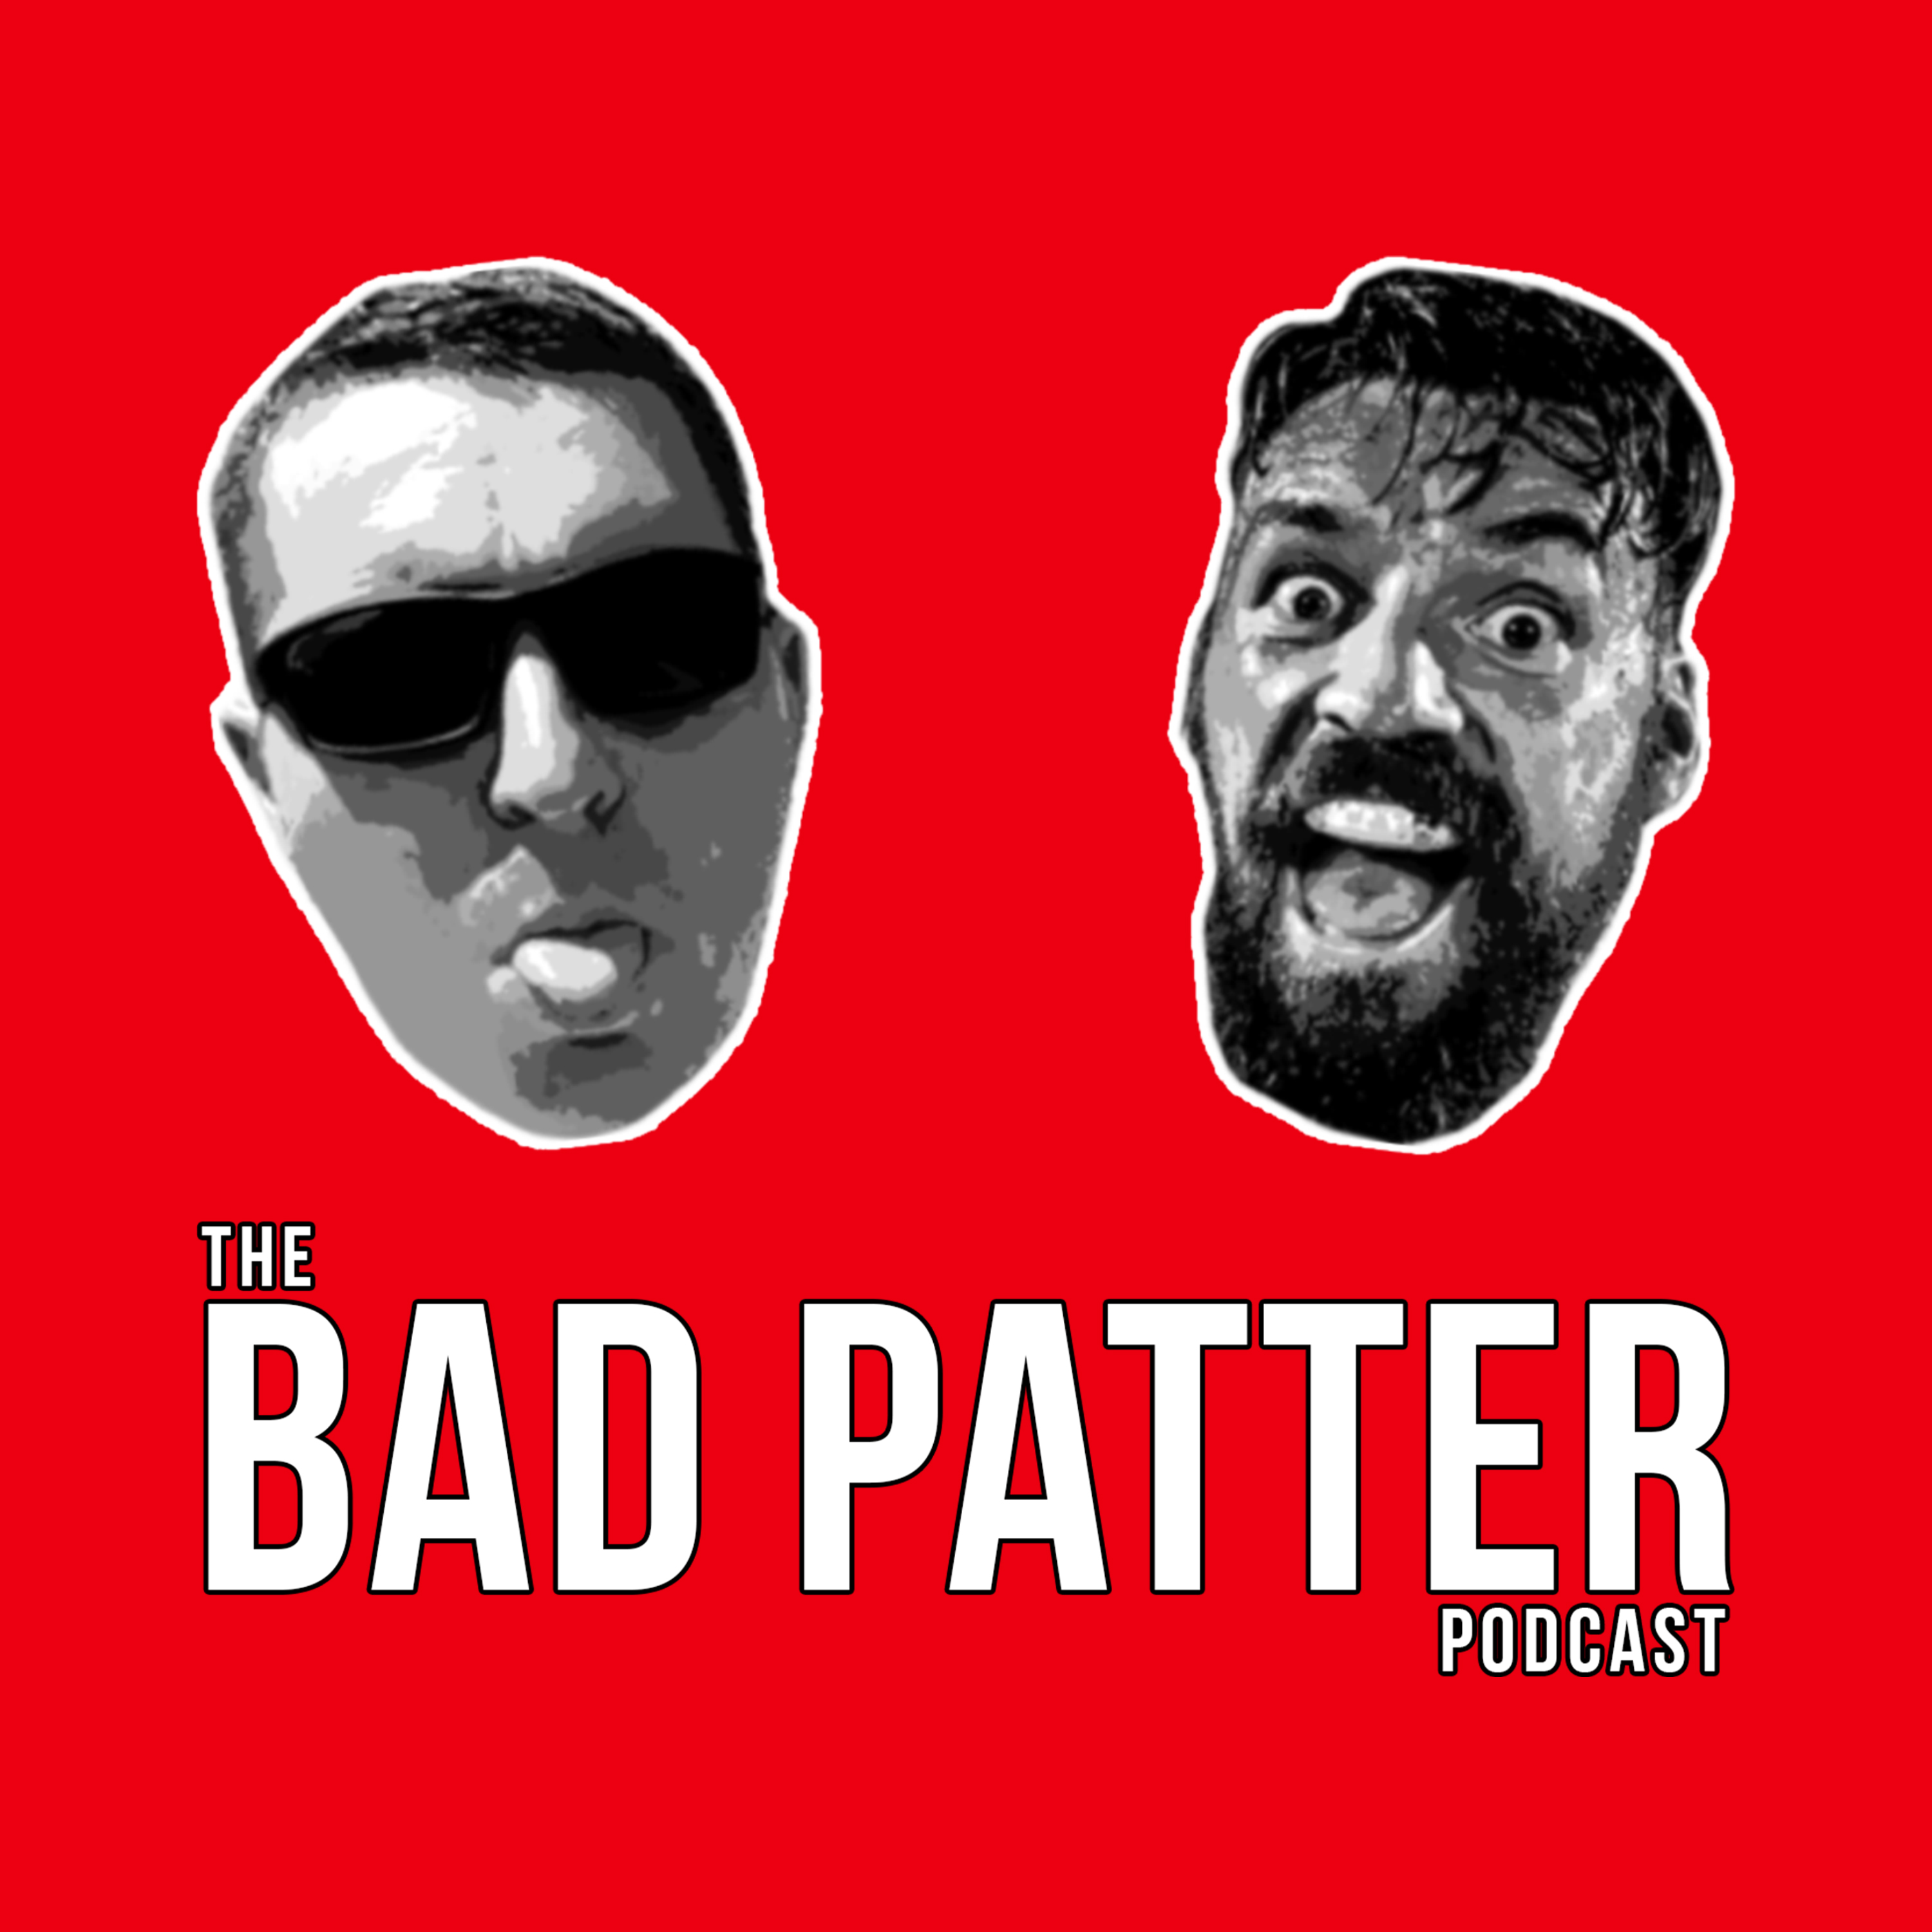 The Bad Patter Podcast